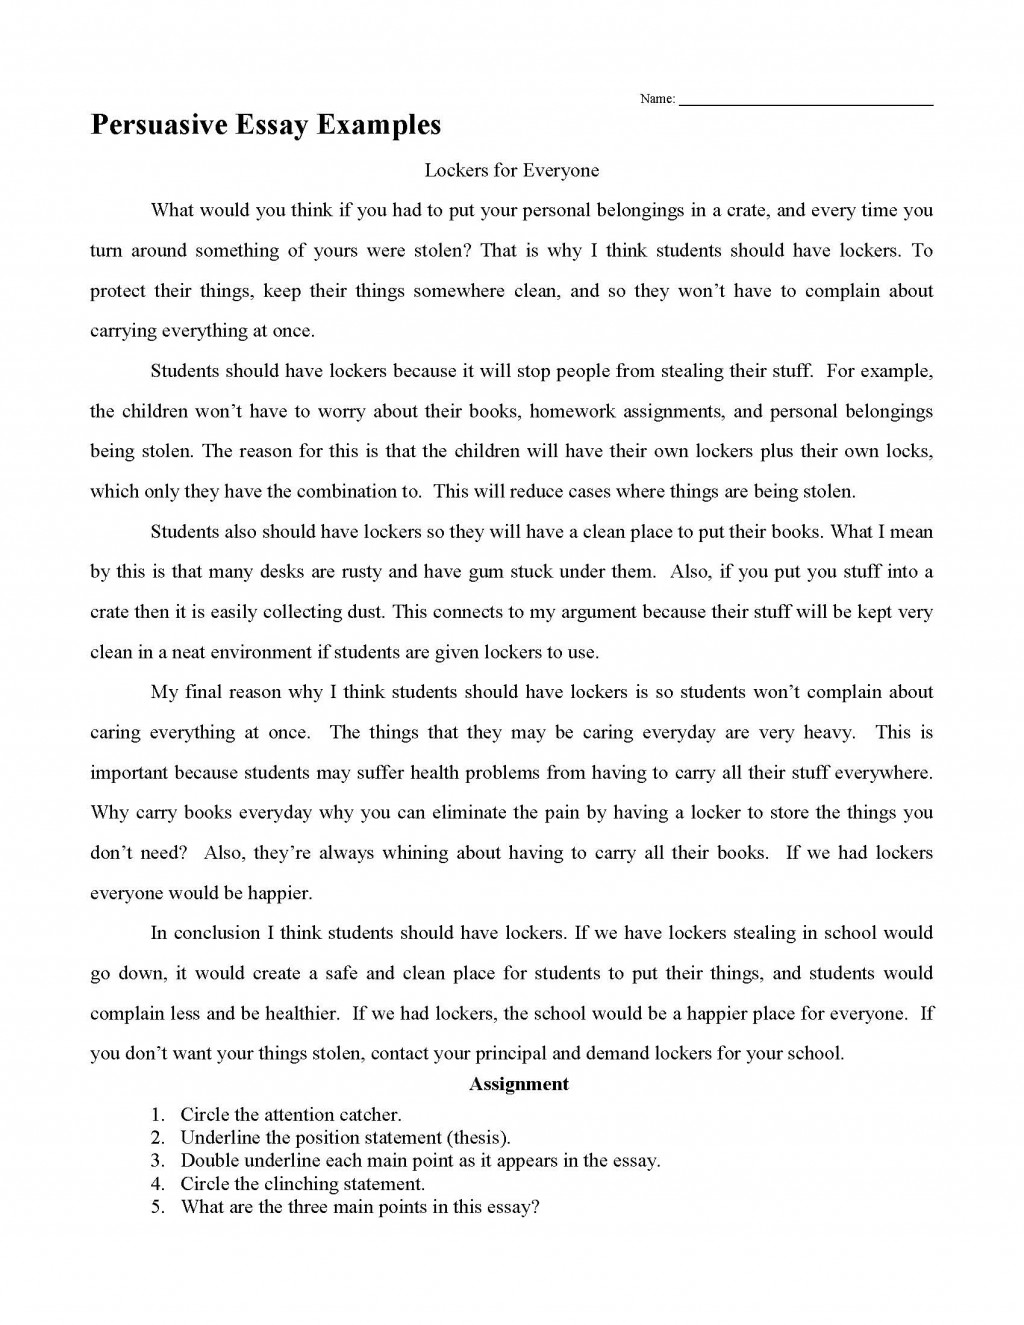 001 Examples Of Persuasive Essays Essay Example Excellent 5th Grade Written By Graders Argumentative-persuasive Topics Large